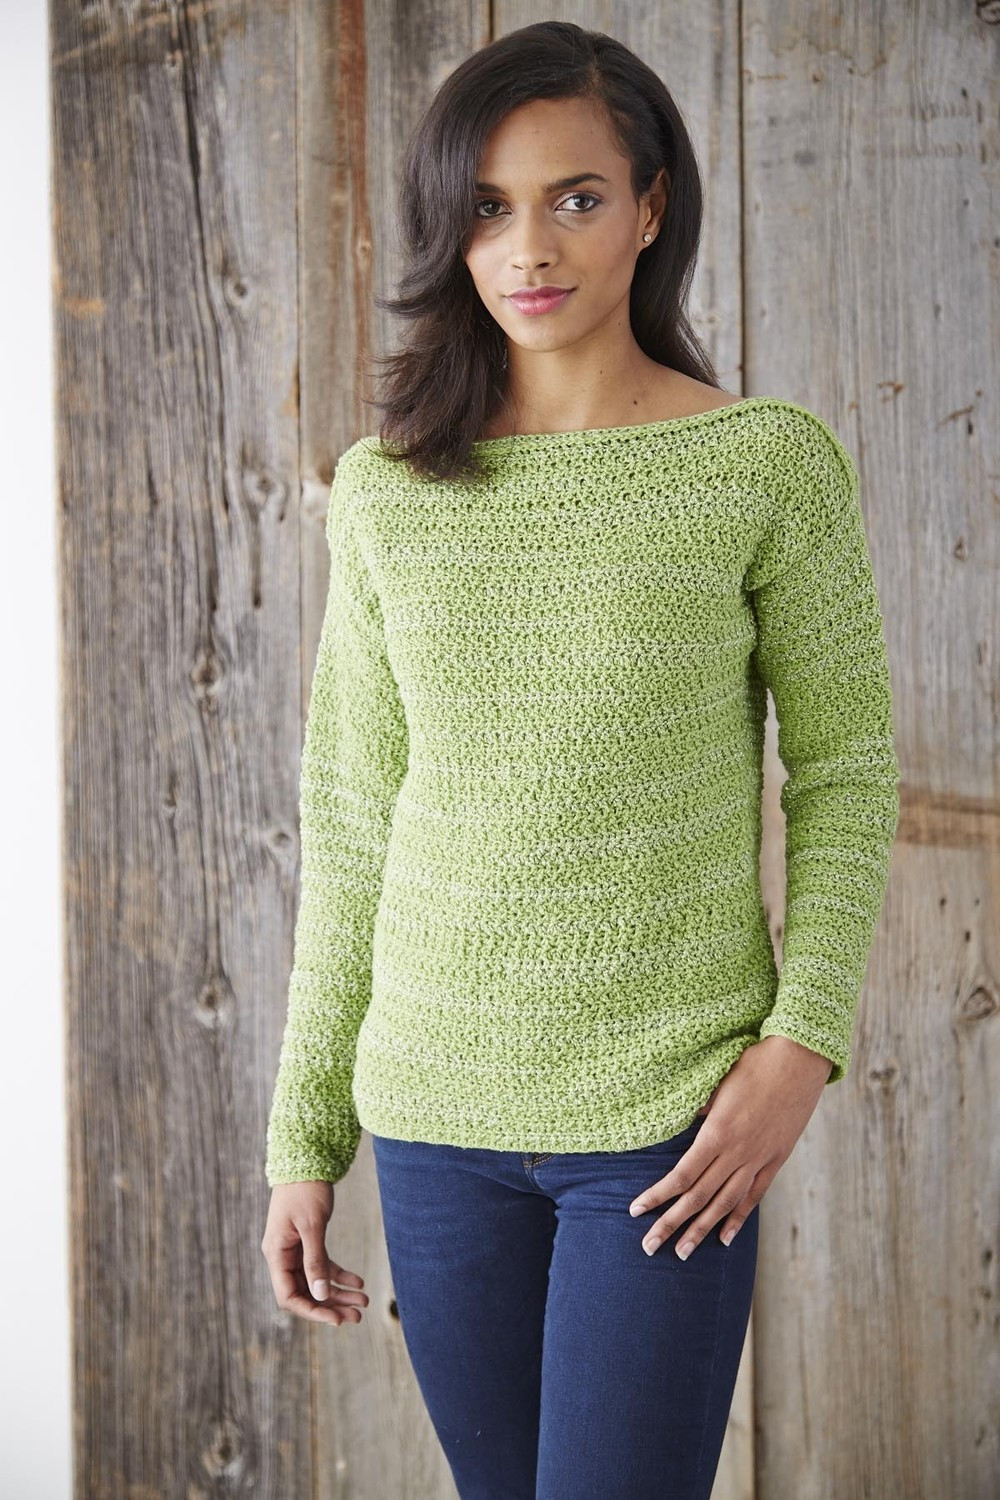 Crochet Sweaters Elegant Boat Neck Pullover Sweater Of Fresh 50 Images Crochet Sweaters